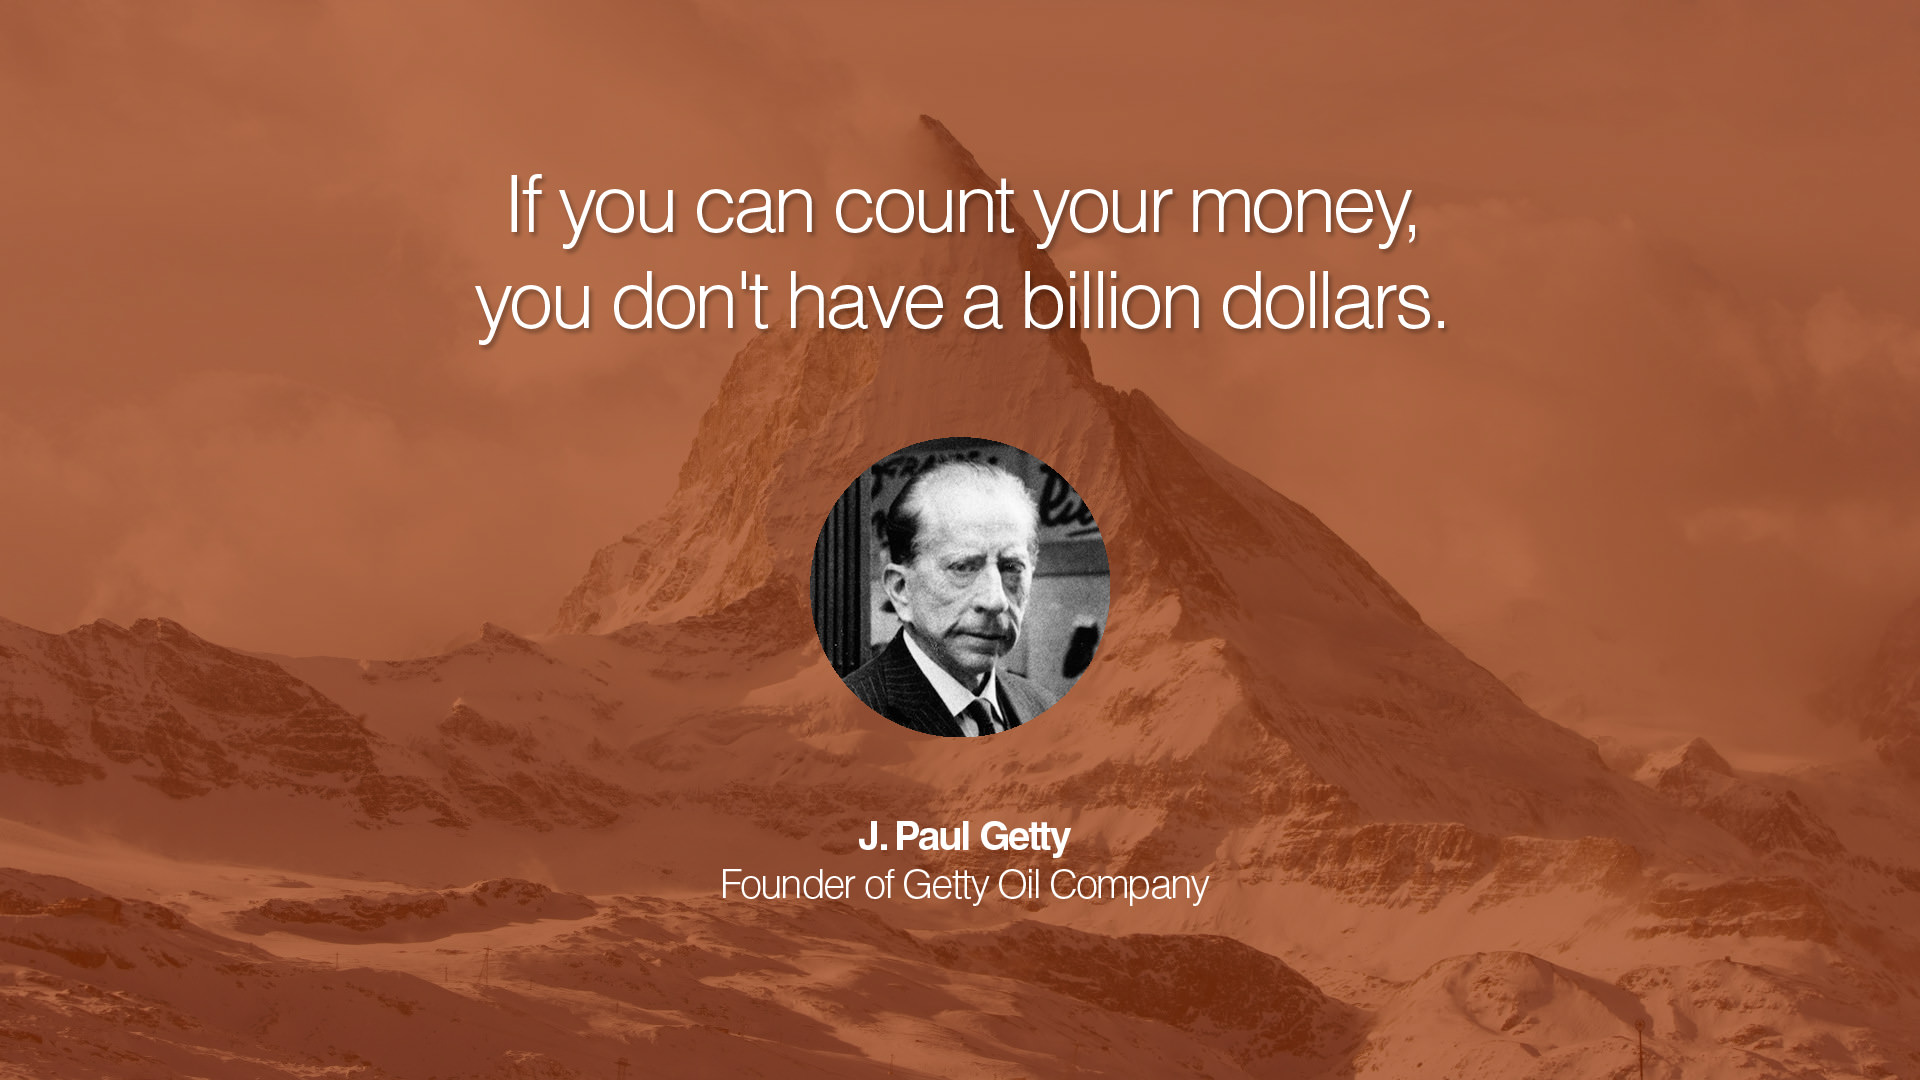 21 inspirational entrepreneur quotes by famous